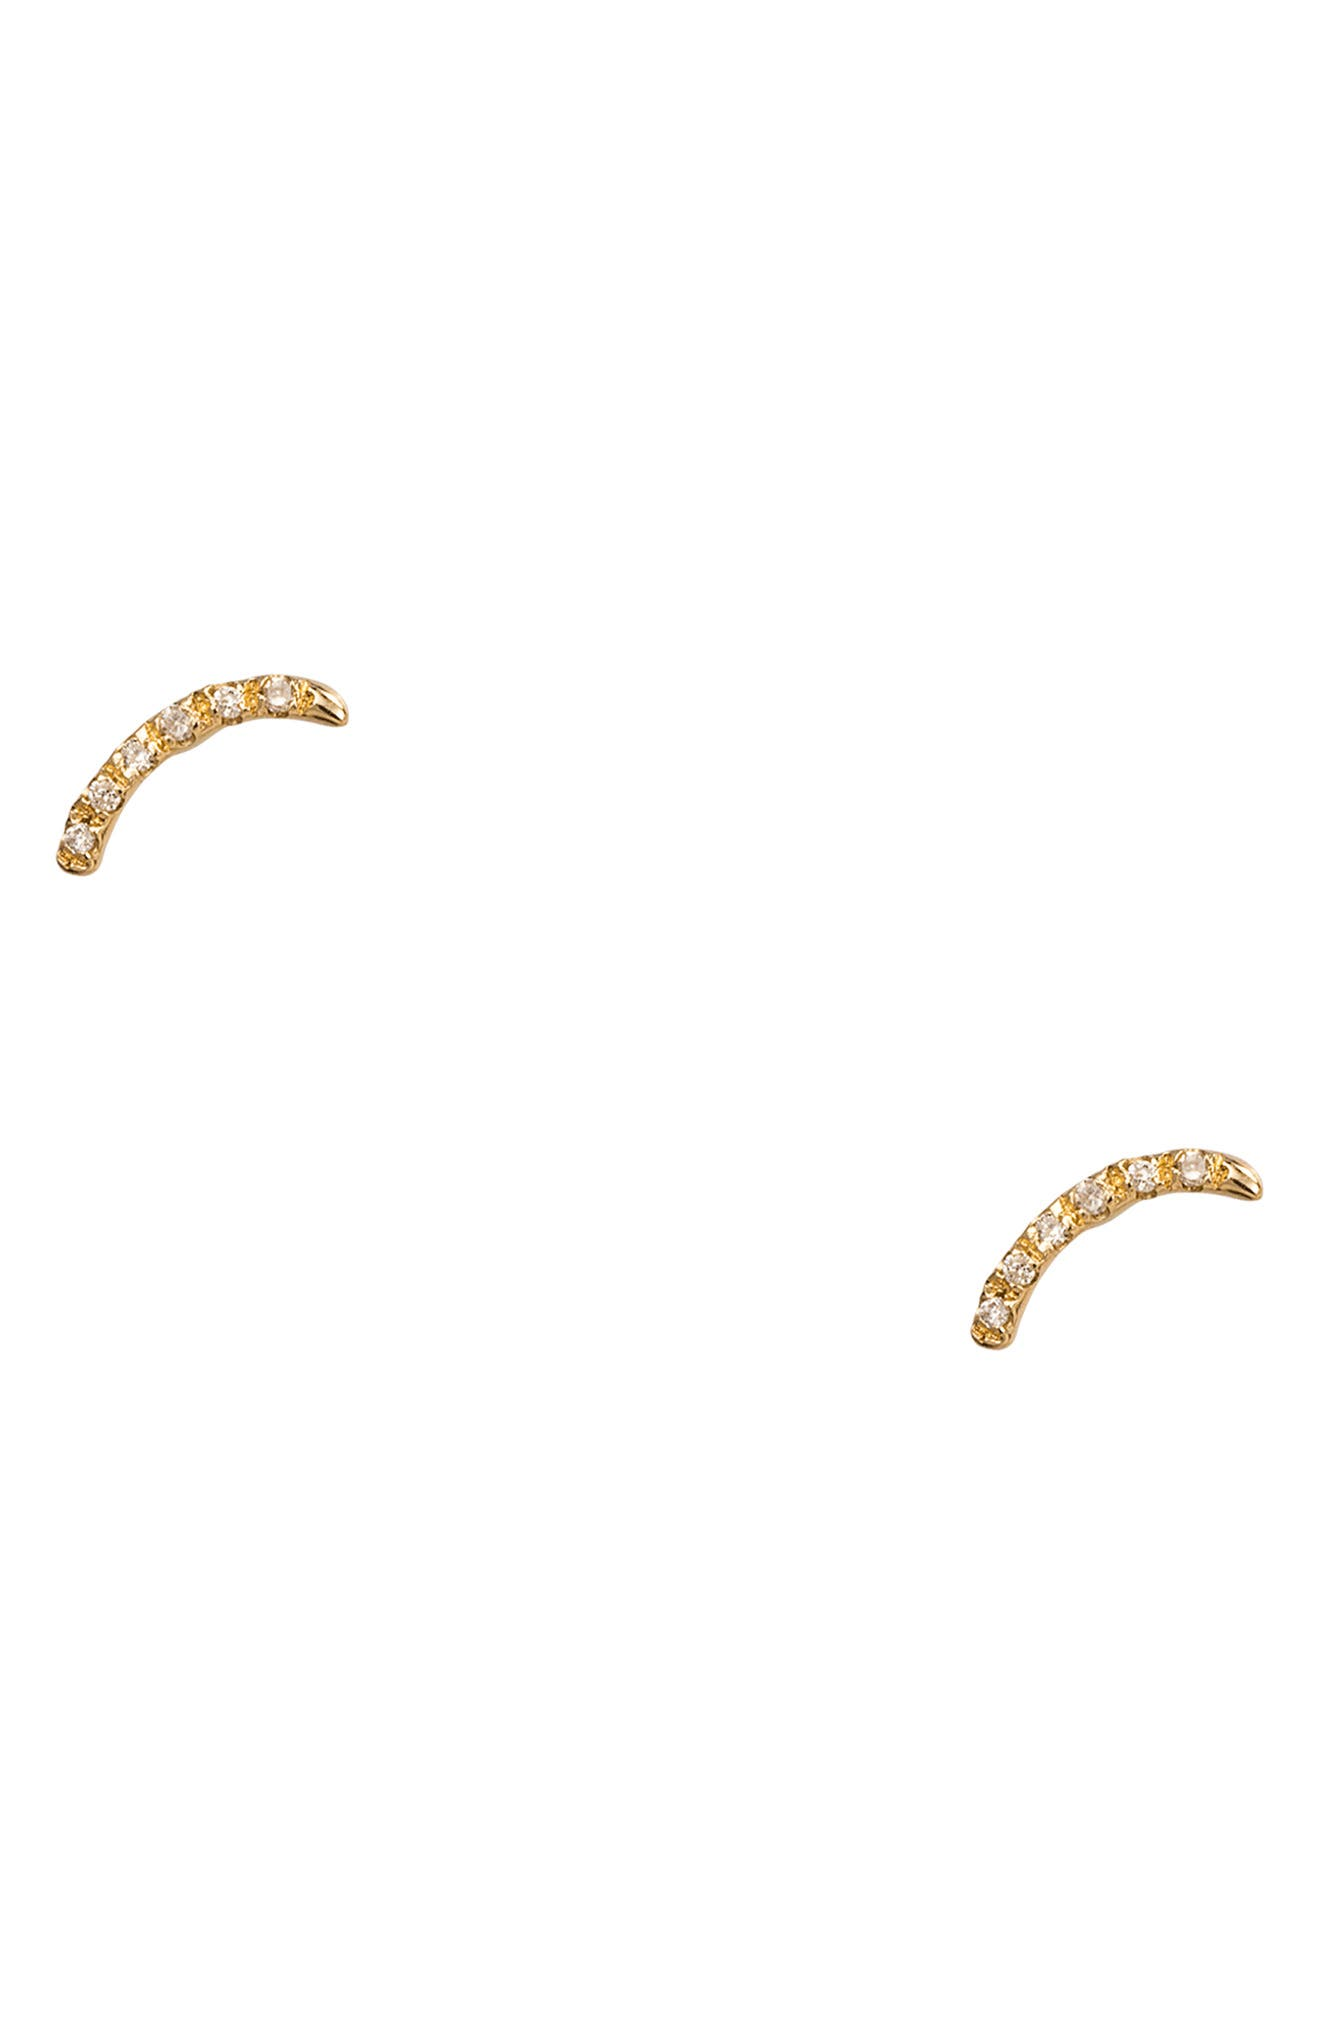 Micropavé Curved Diamond Earrings,                             Main thumbnail 1, color,                             14KT GOLD